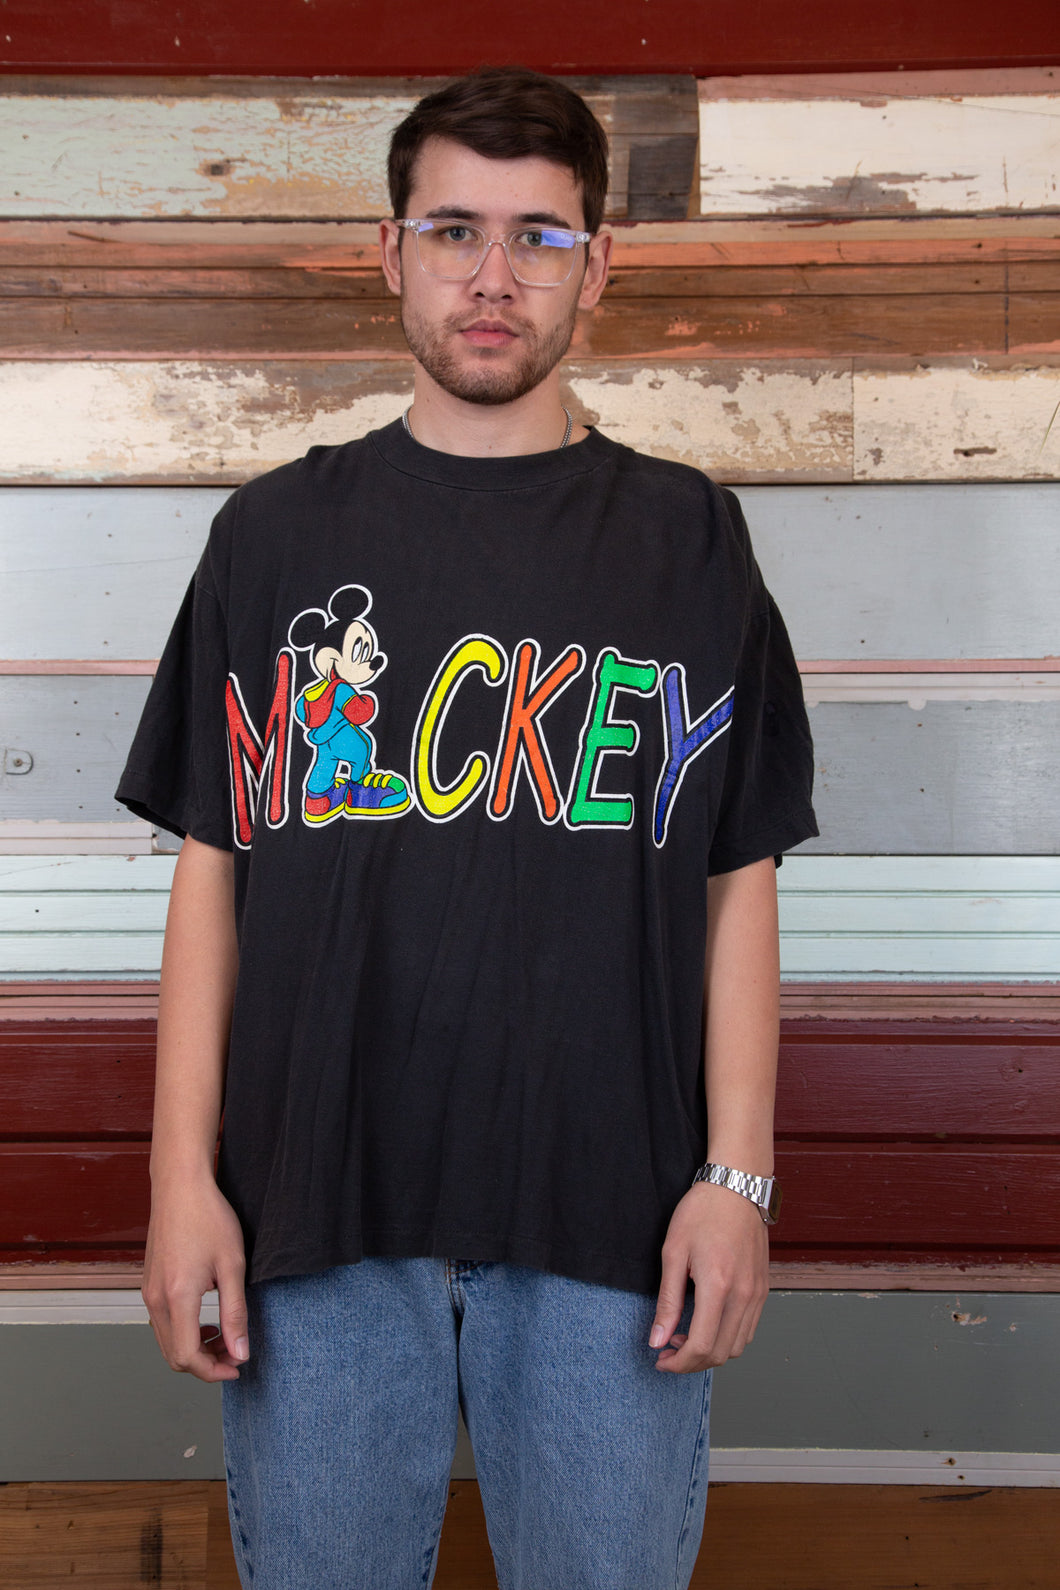 boxy black tee with vibrant mickey spell-out graphic across chest